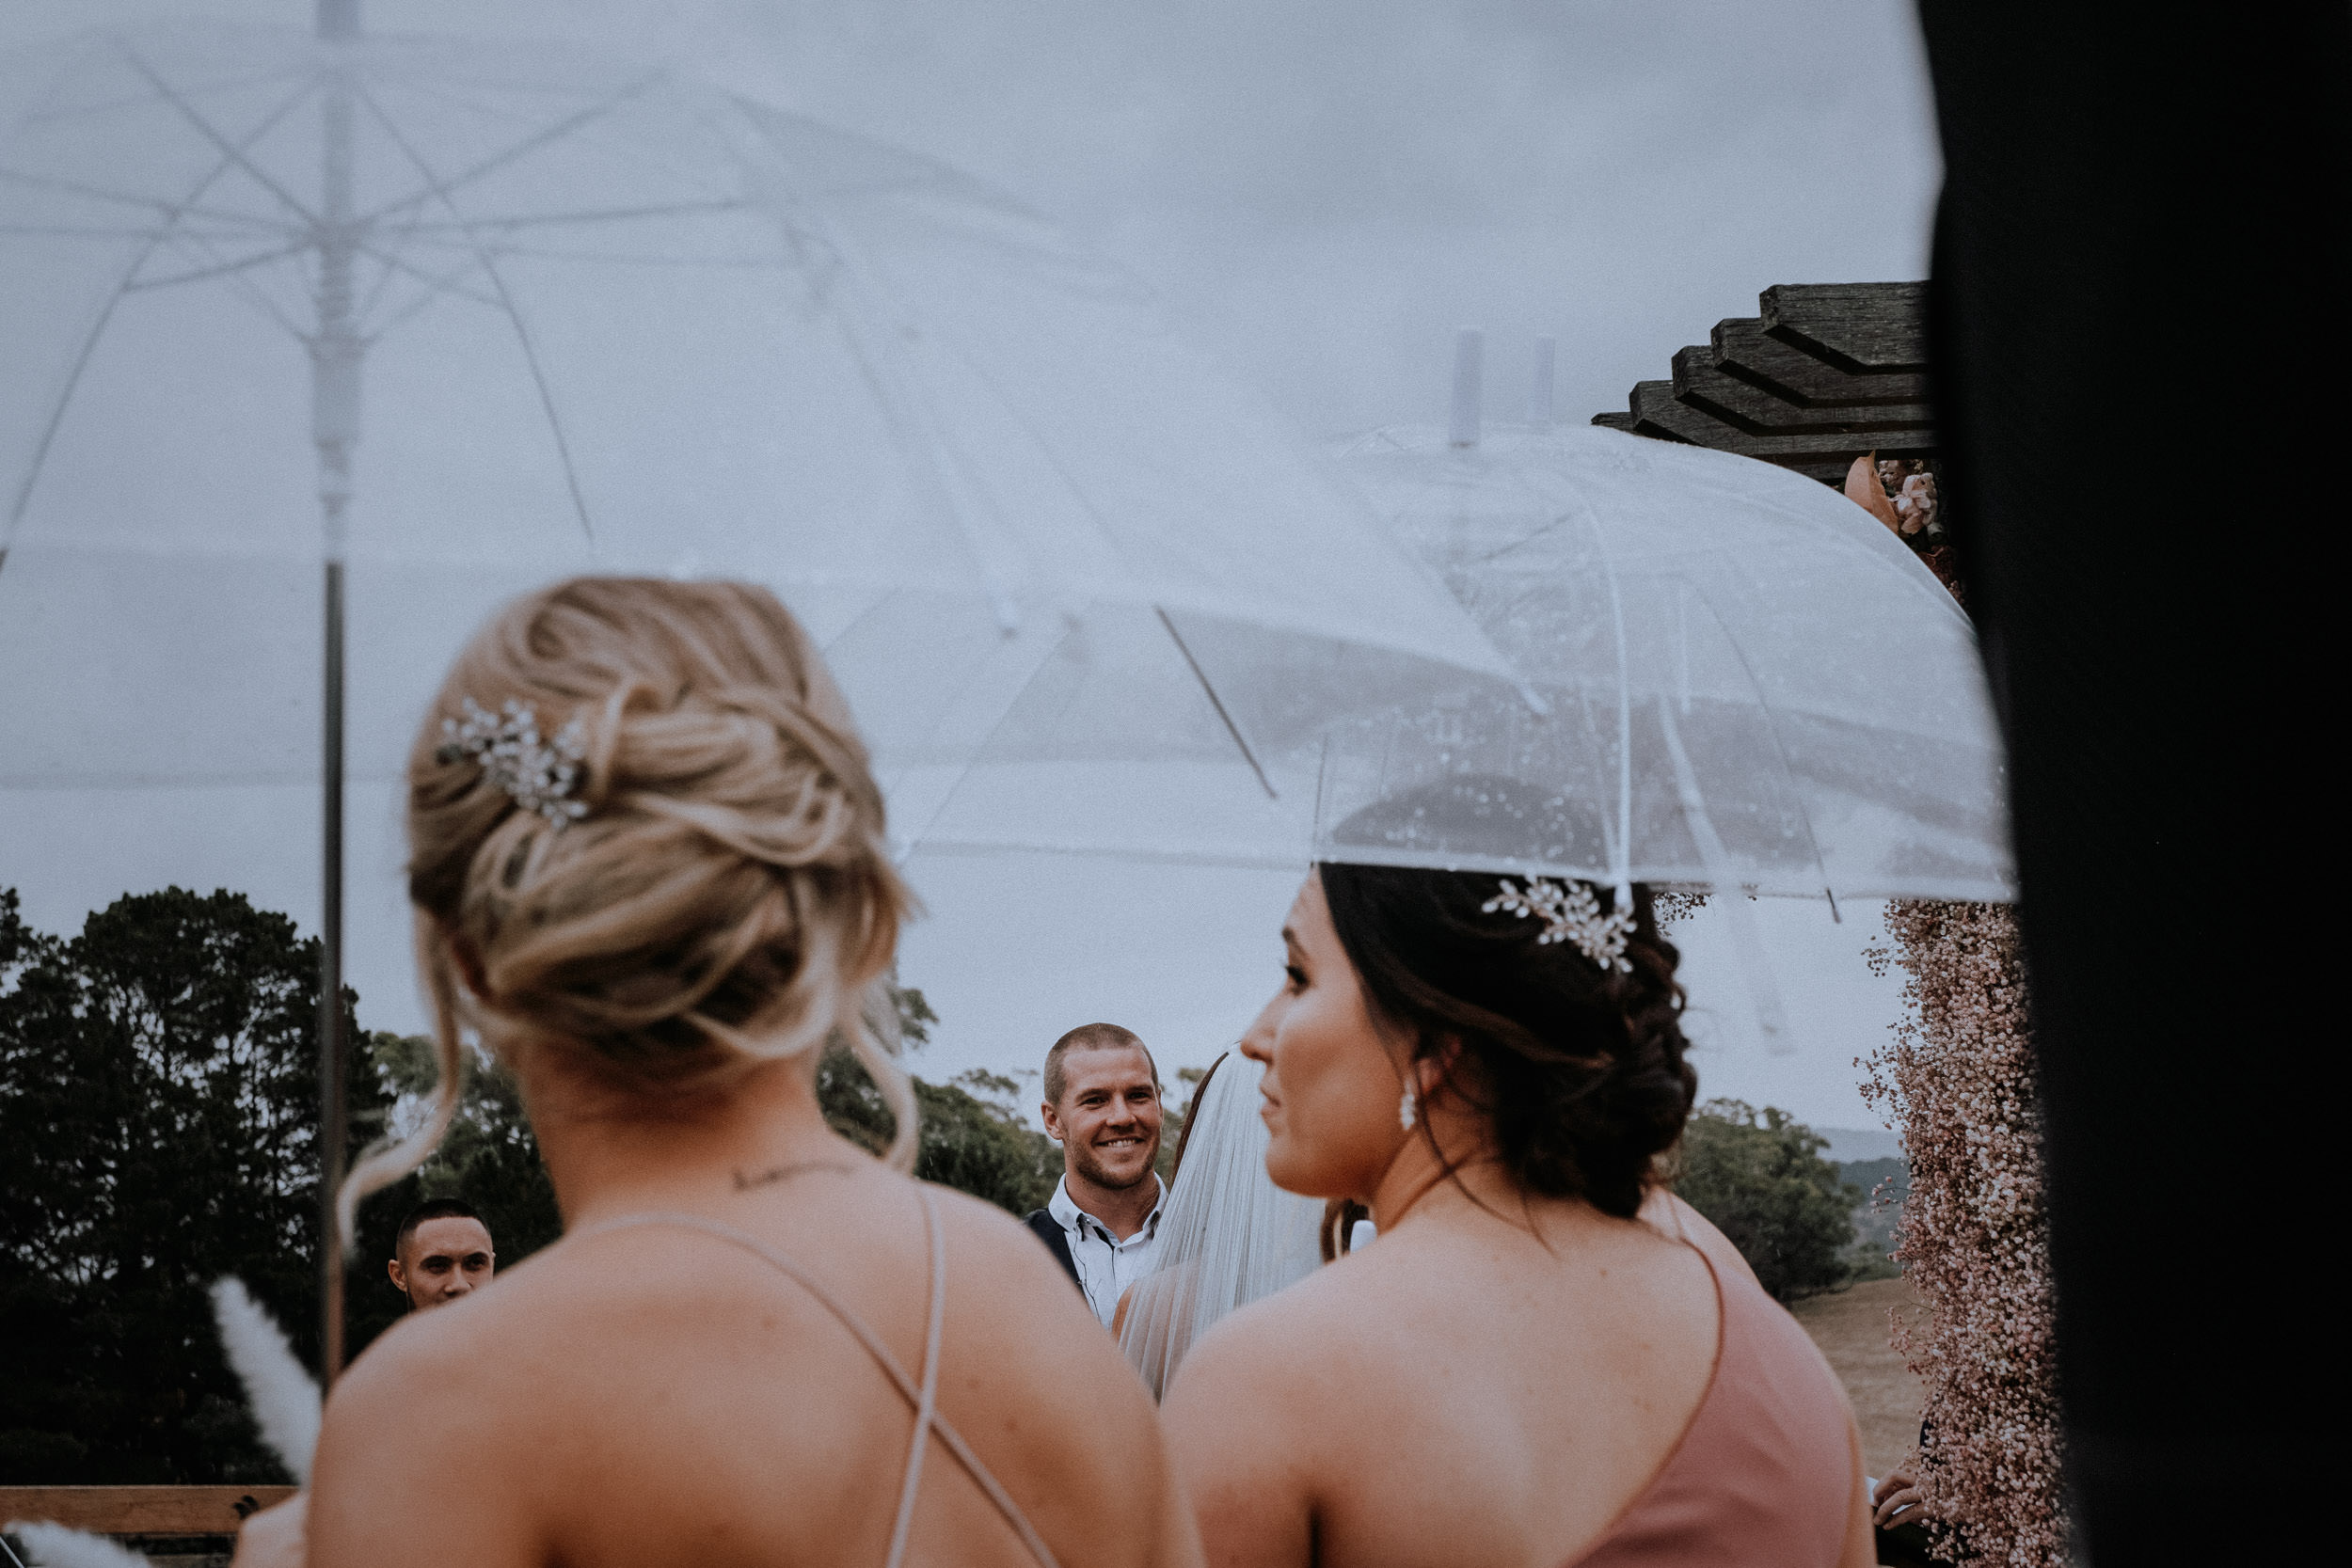 Rainy outdoor wedding at Seclusions Blue Mountains near Lake Lyell Lithgow